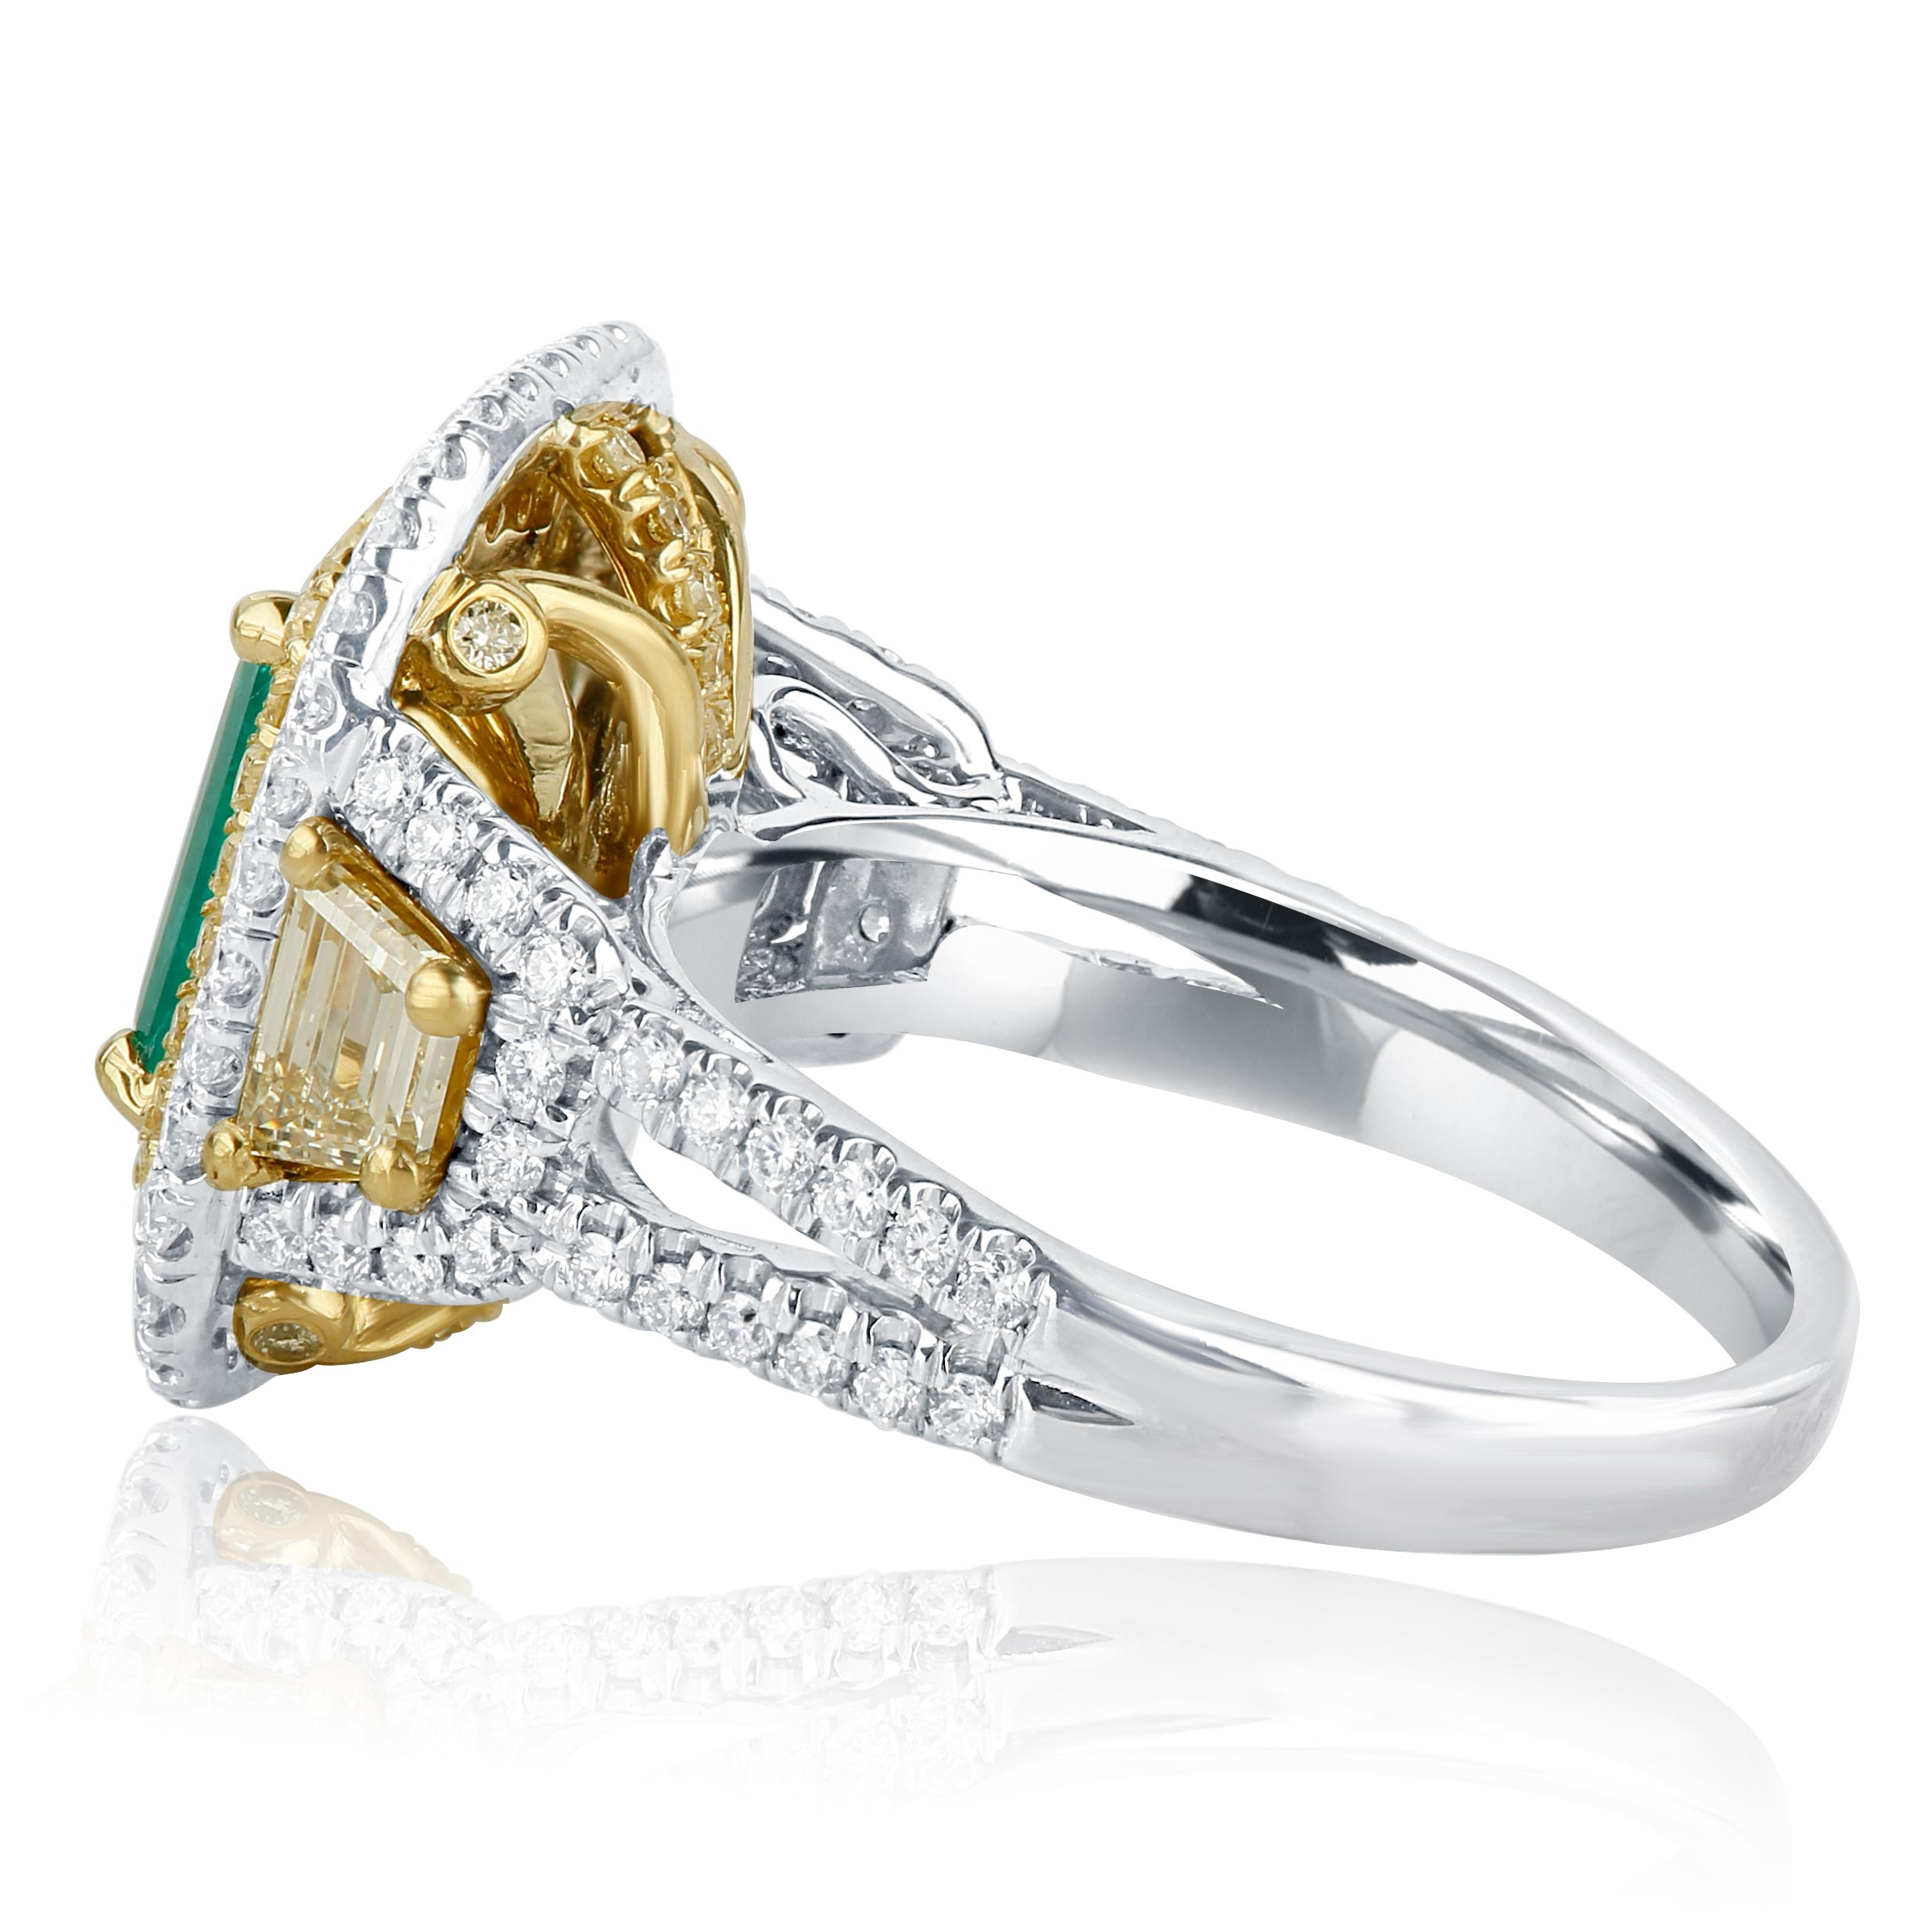 Efficient Sparkling Genuine Natural Fancy Diamond Ring In Sterling Silver 0.28ct Jewelry & Watches Fine Rings